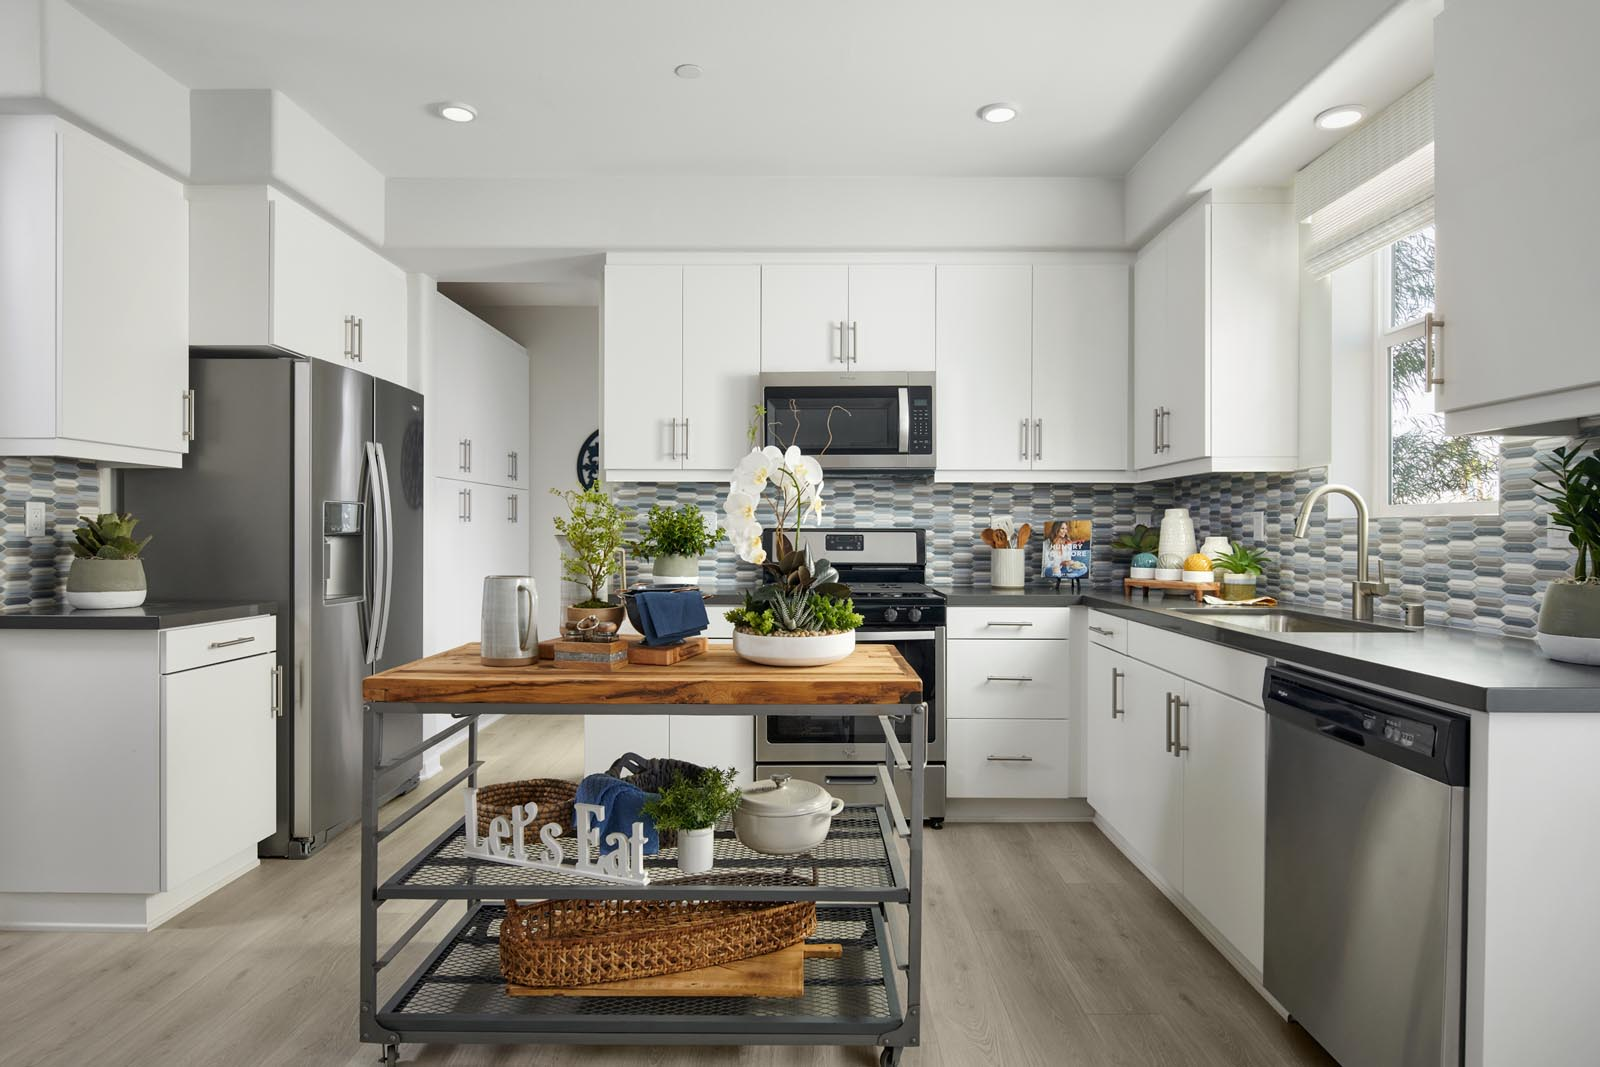 Kitchen   Residence 1   Enliven   New Homes in Rancho Cucamonga, CA   Van Daele Homes